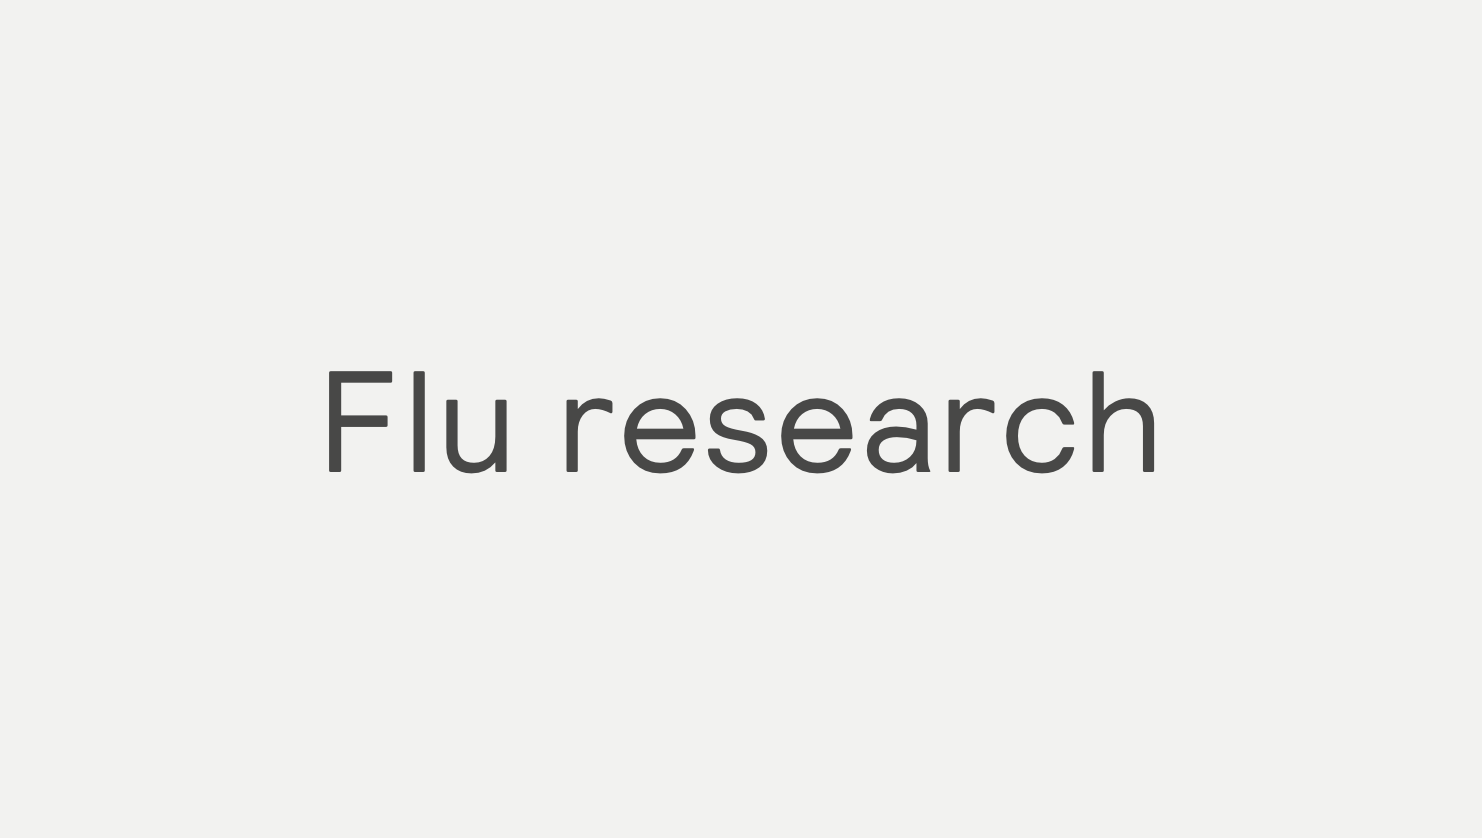 Flu test research